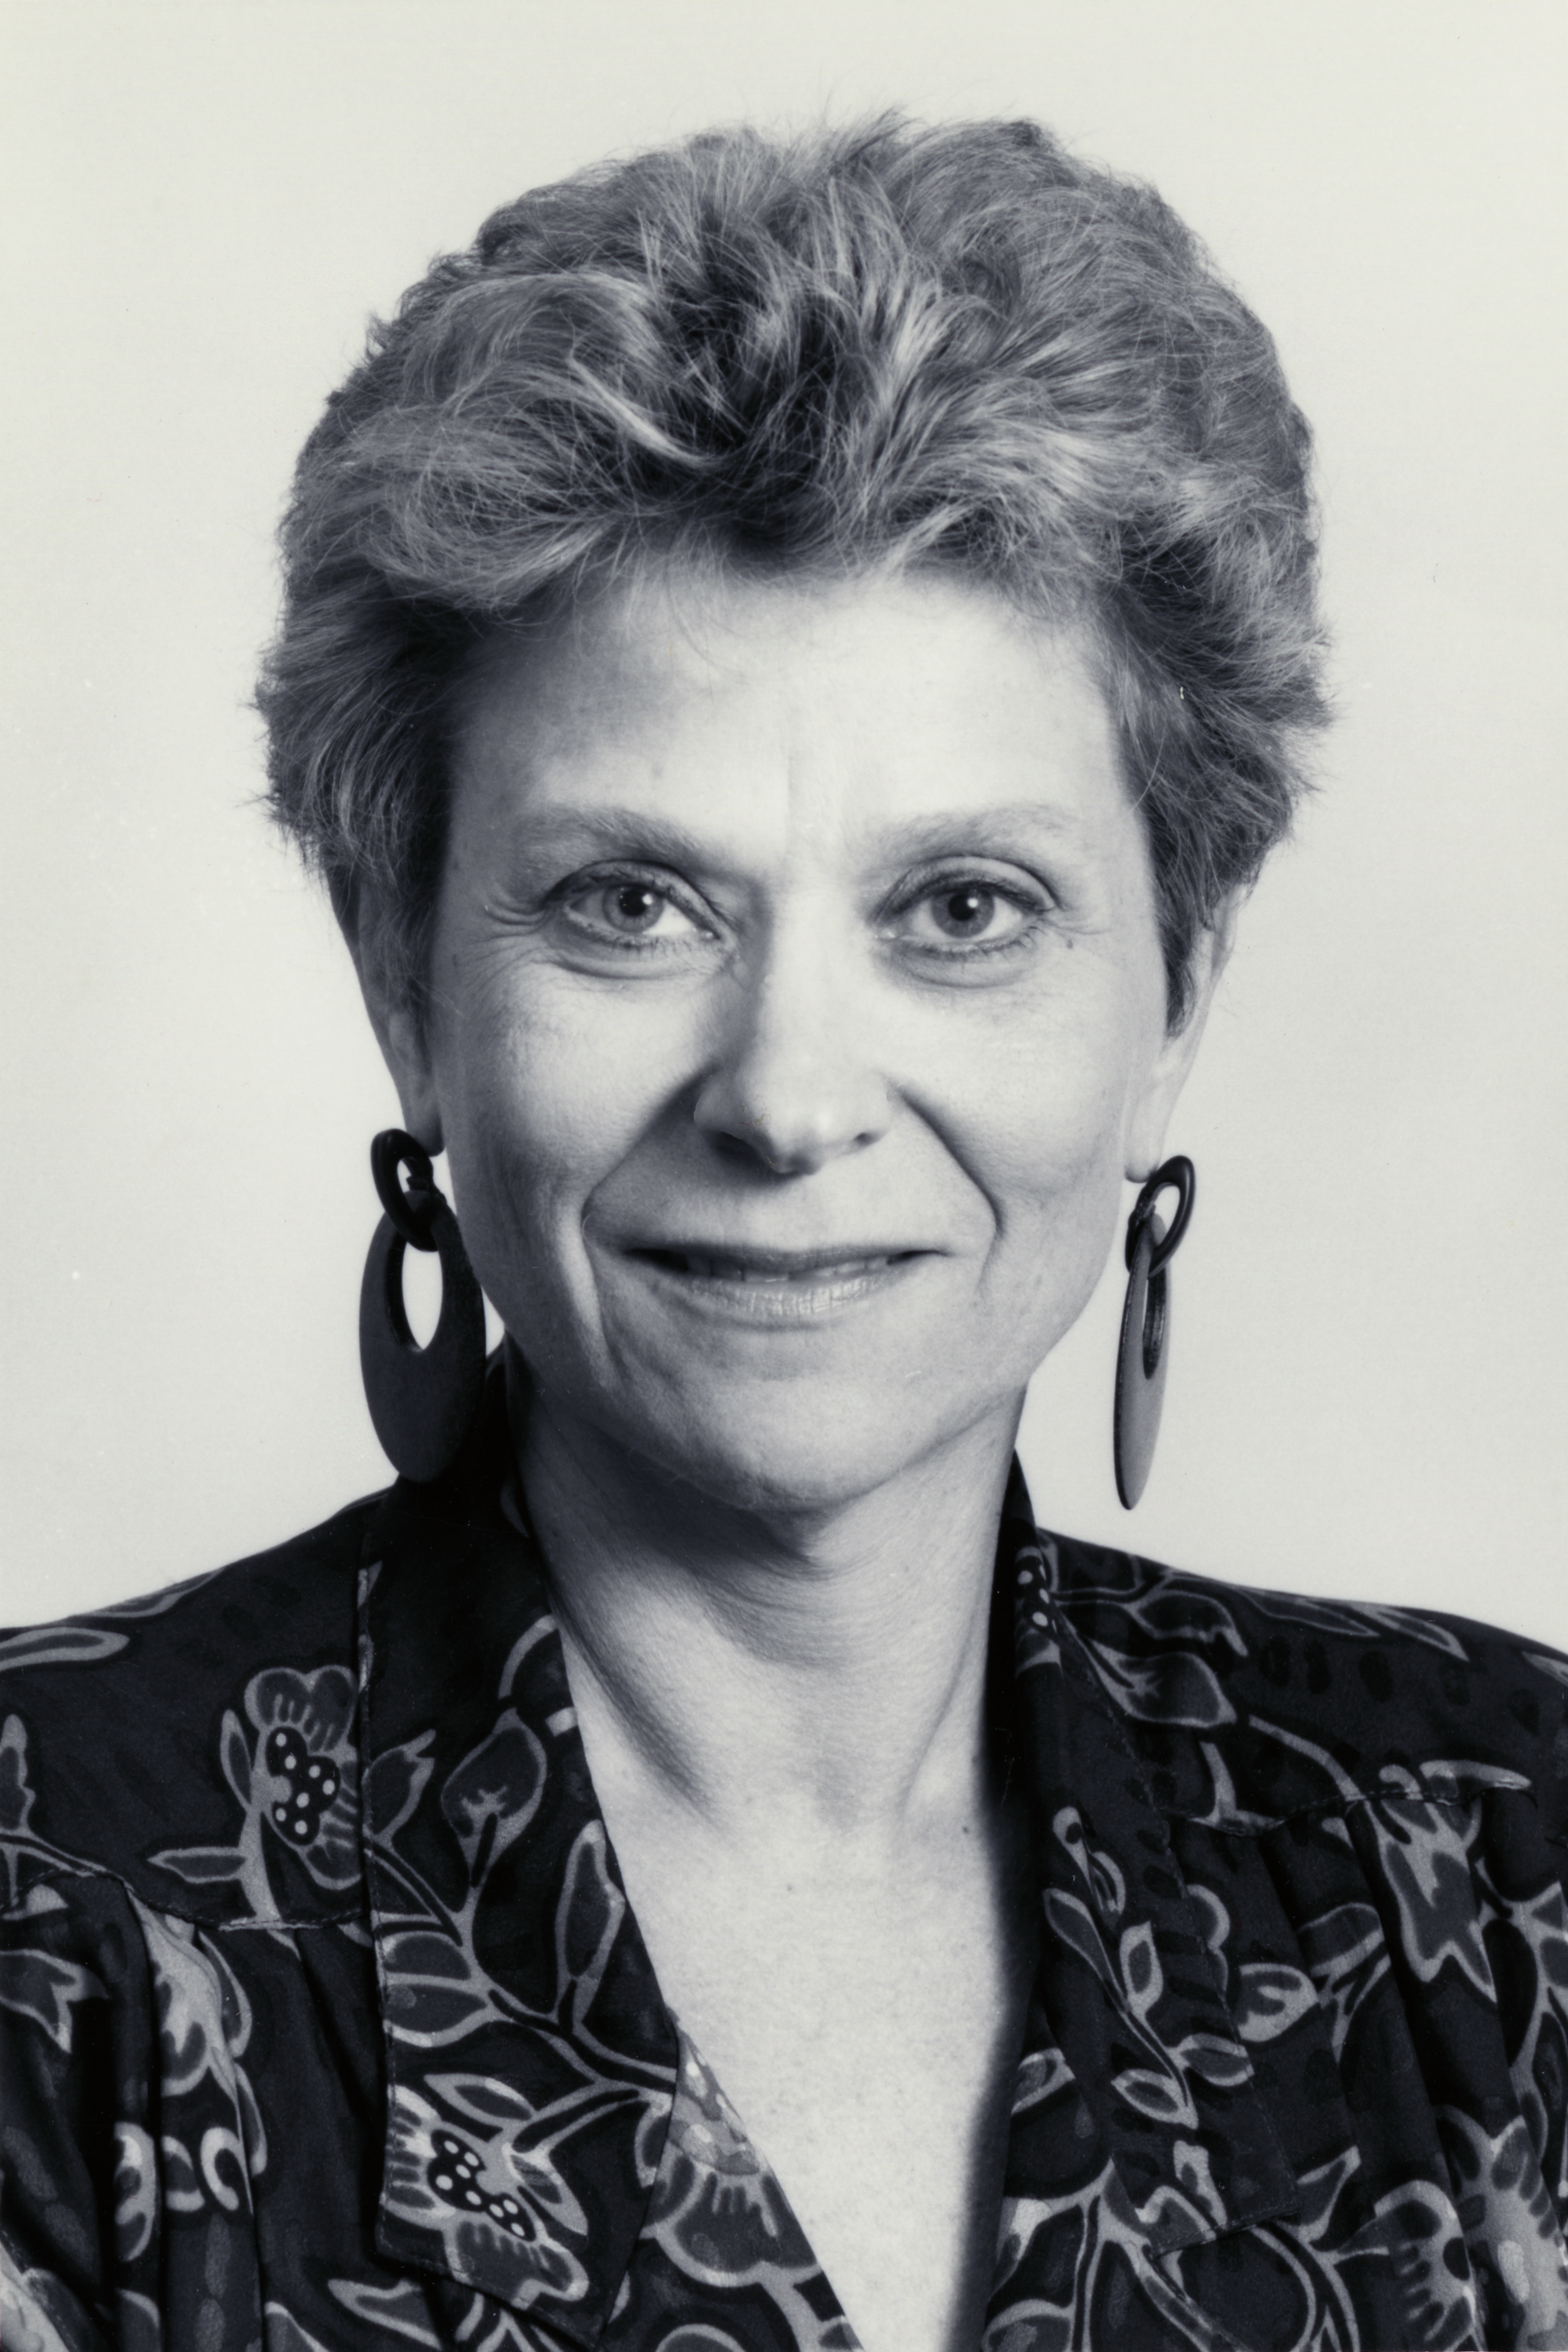 Mourning the loss of Prof. Jacqueline Kanovitz, longtime 'force' at Brandeis